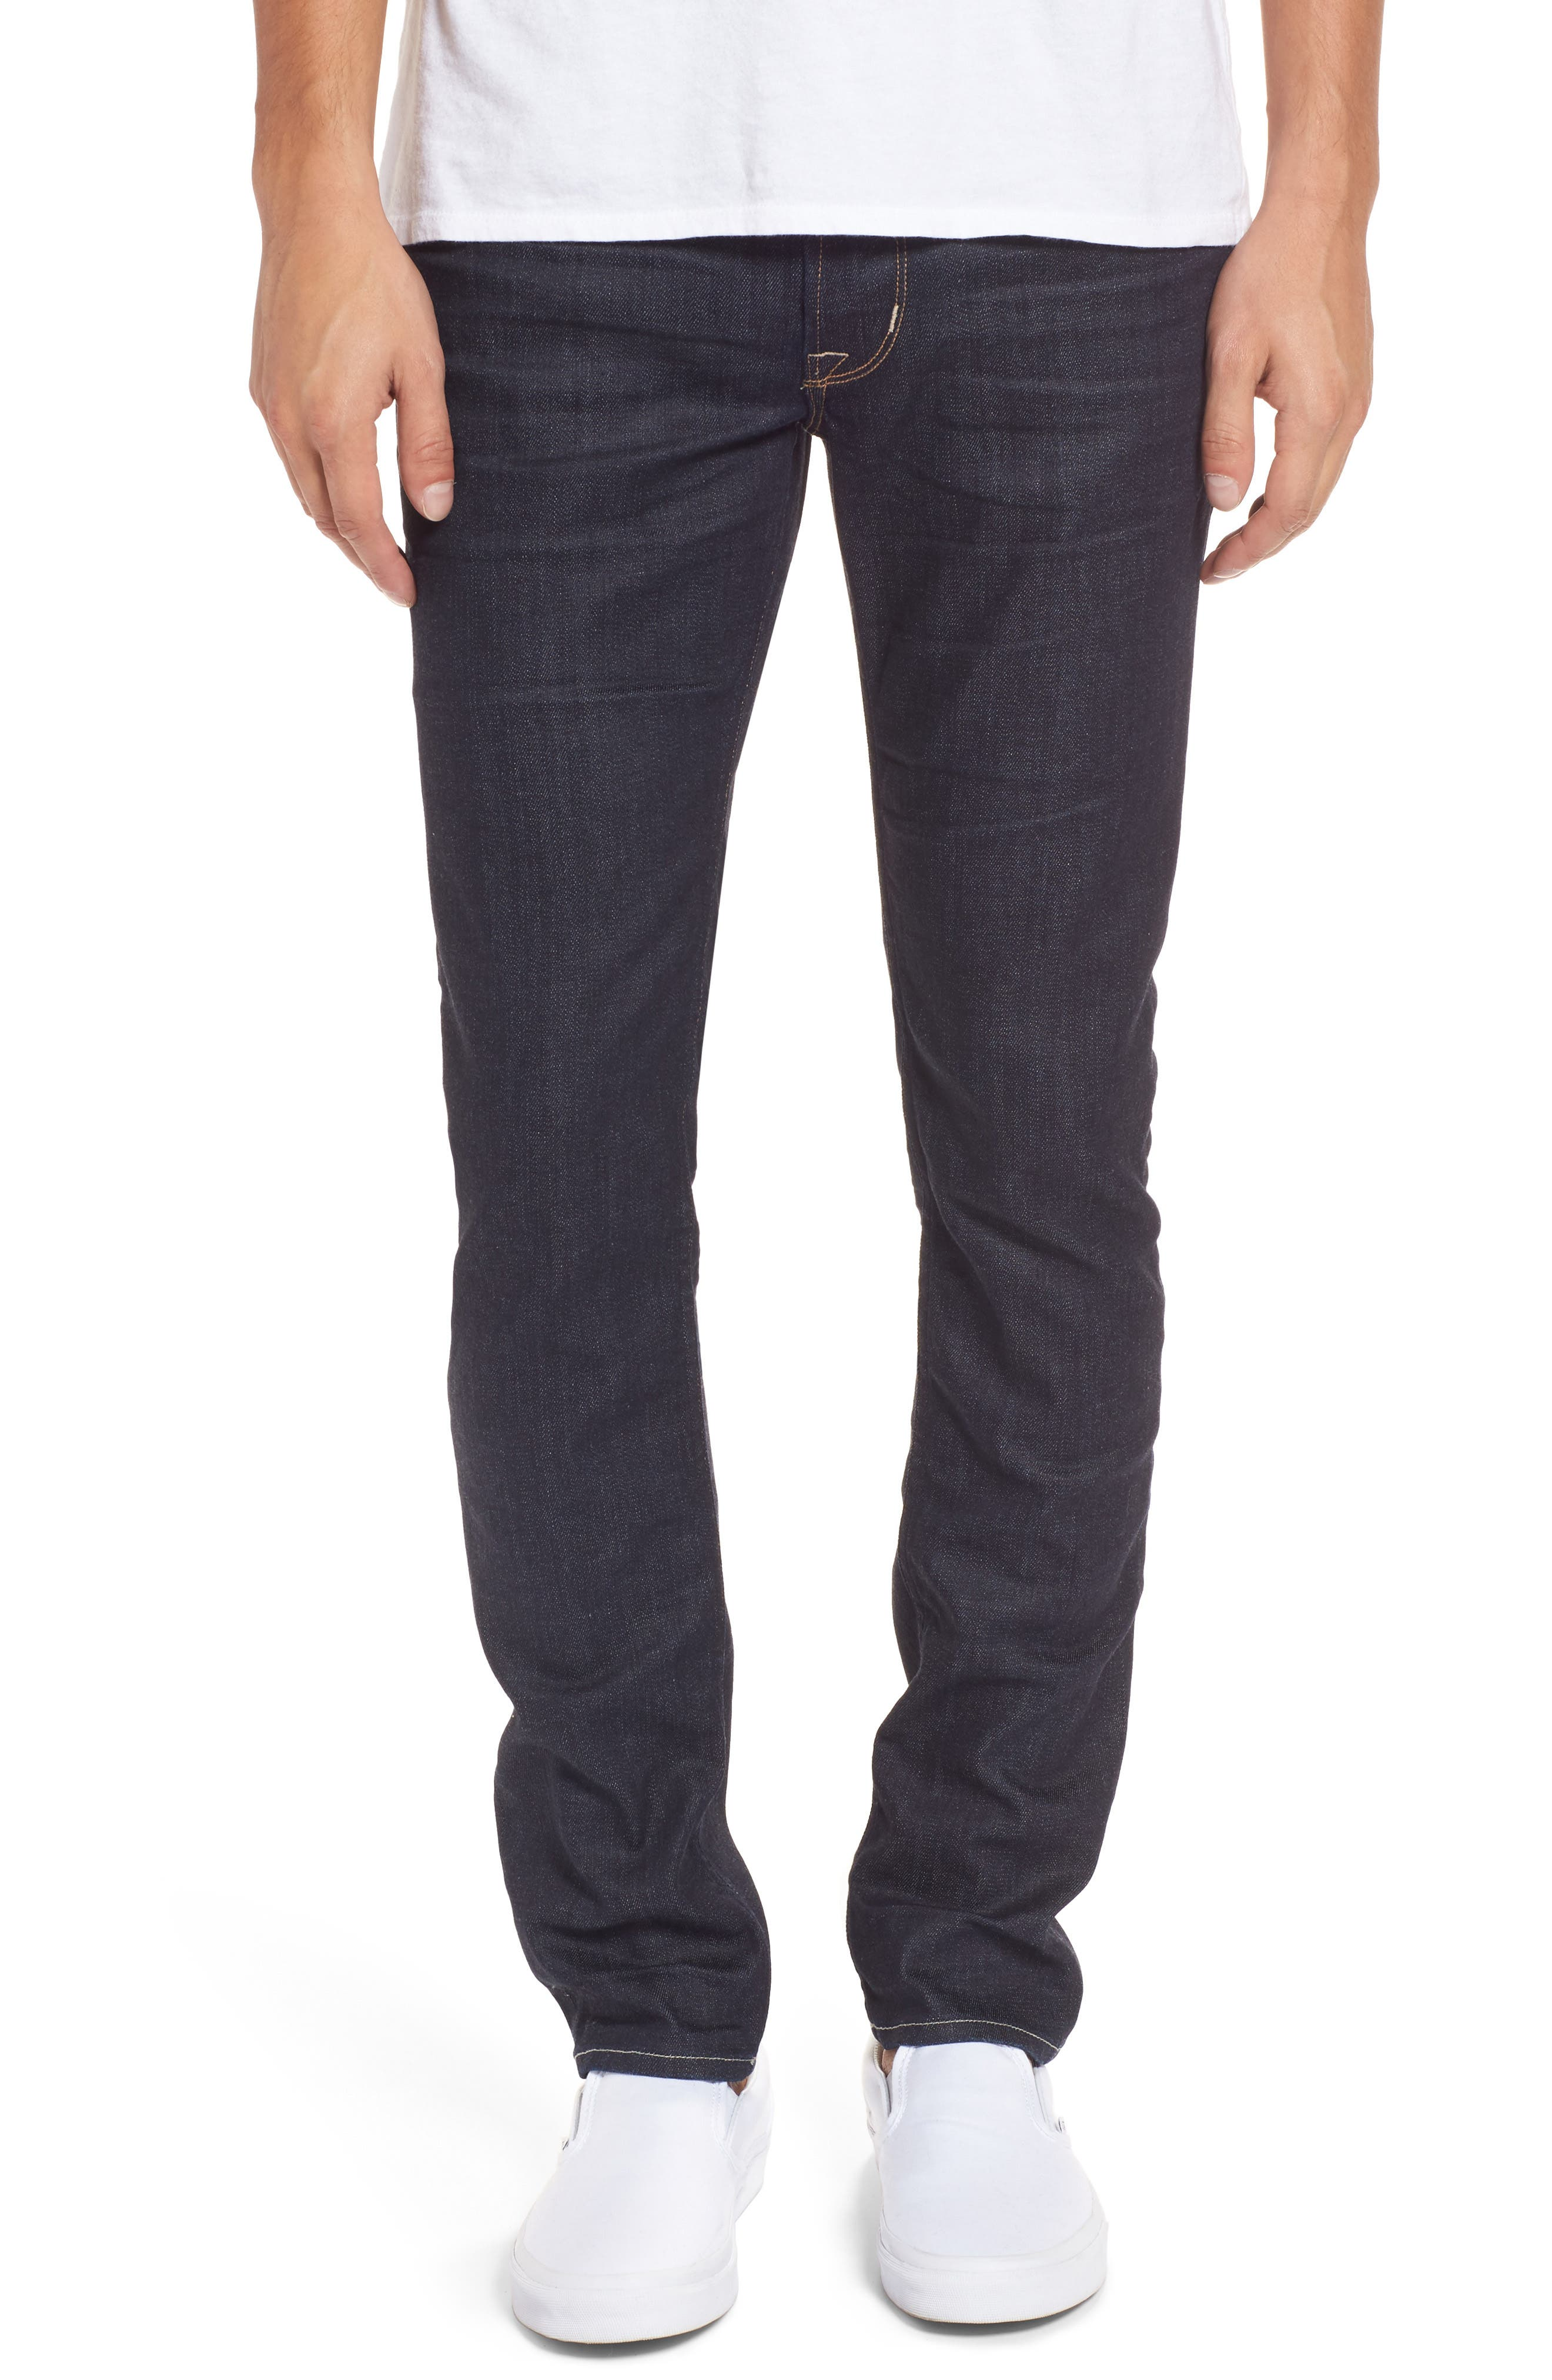 Hudson Axl Skinny Fit Jeans,                             Main thumbnail 1, color,                             420